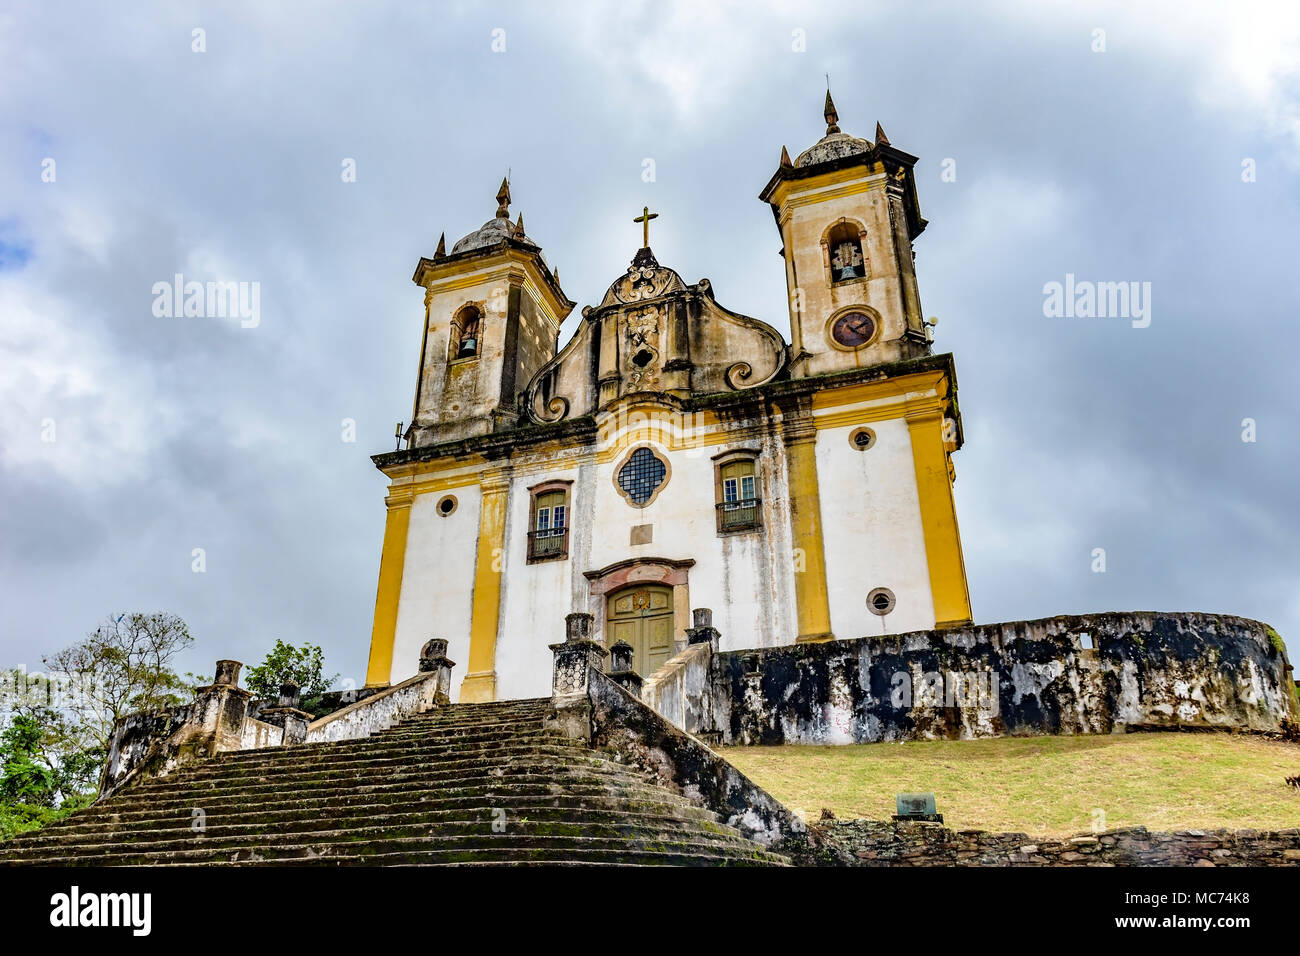 Ancient and aged historical church high in one of the several hills of the city of Ouro Preto with dark clouds in background - Stock Image